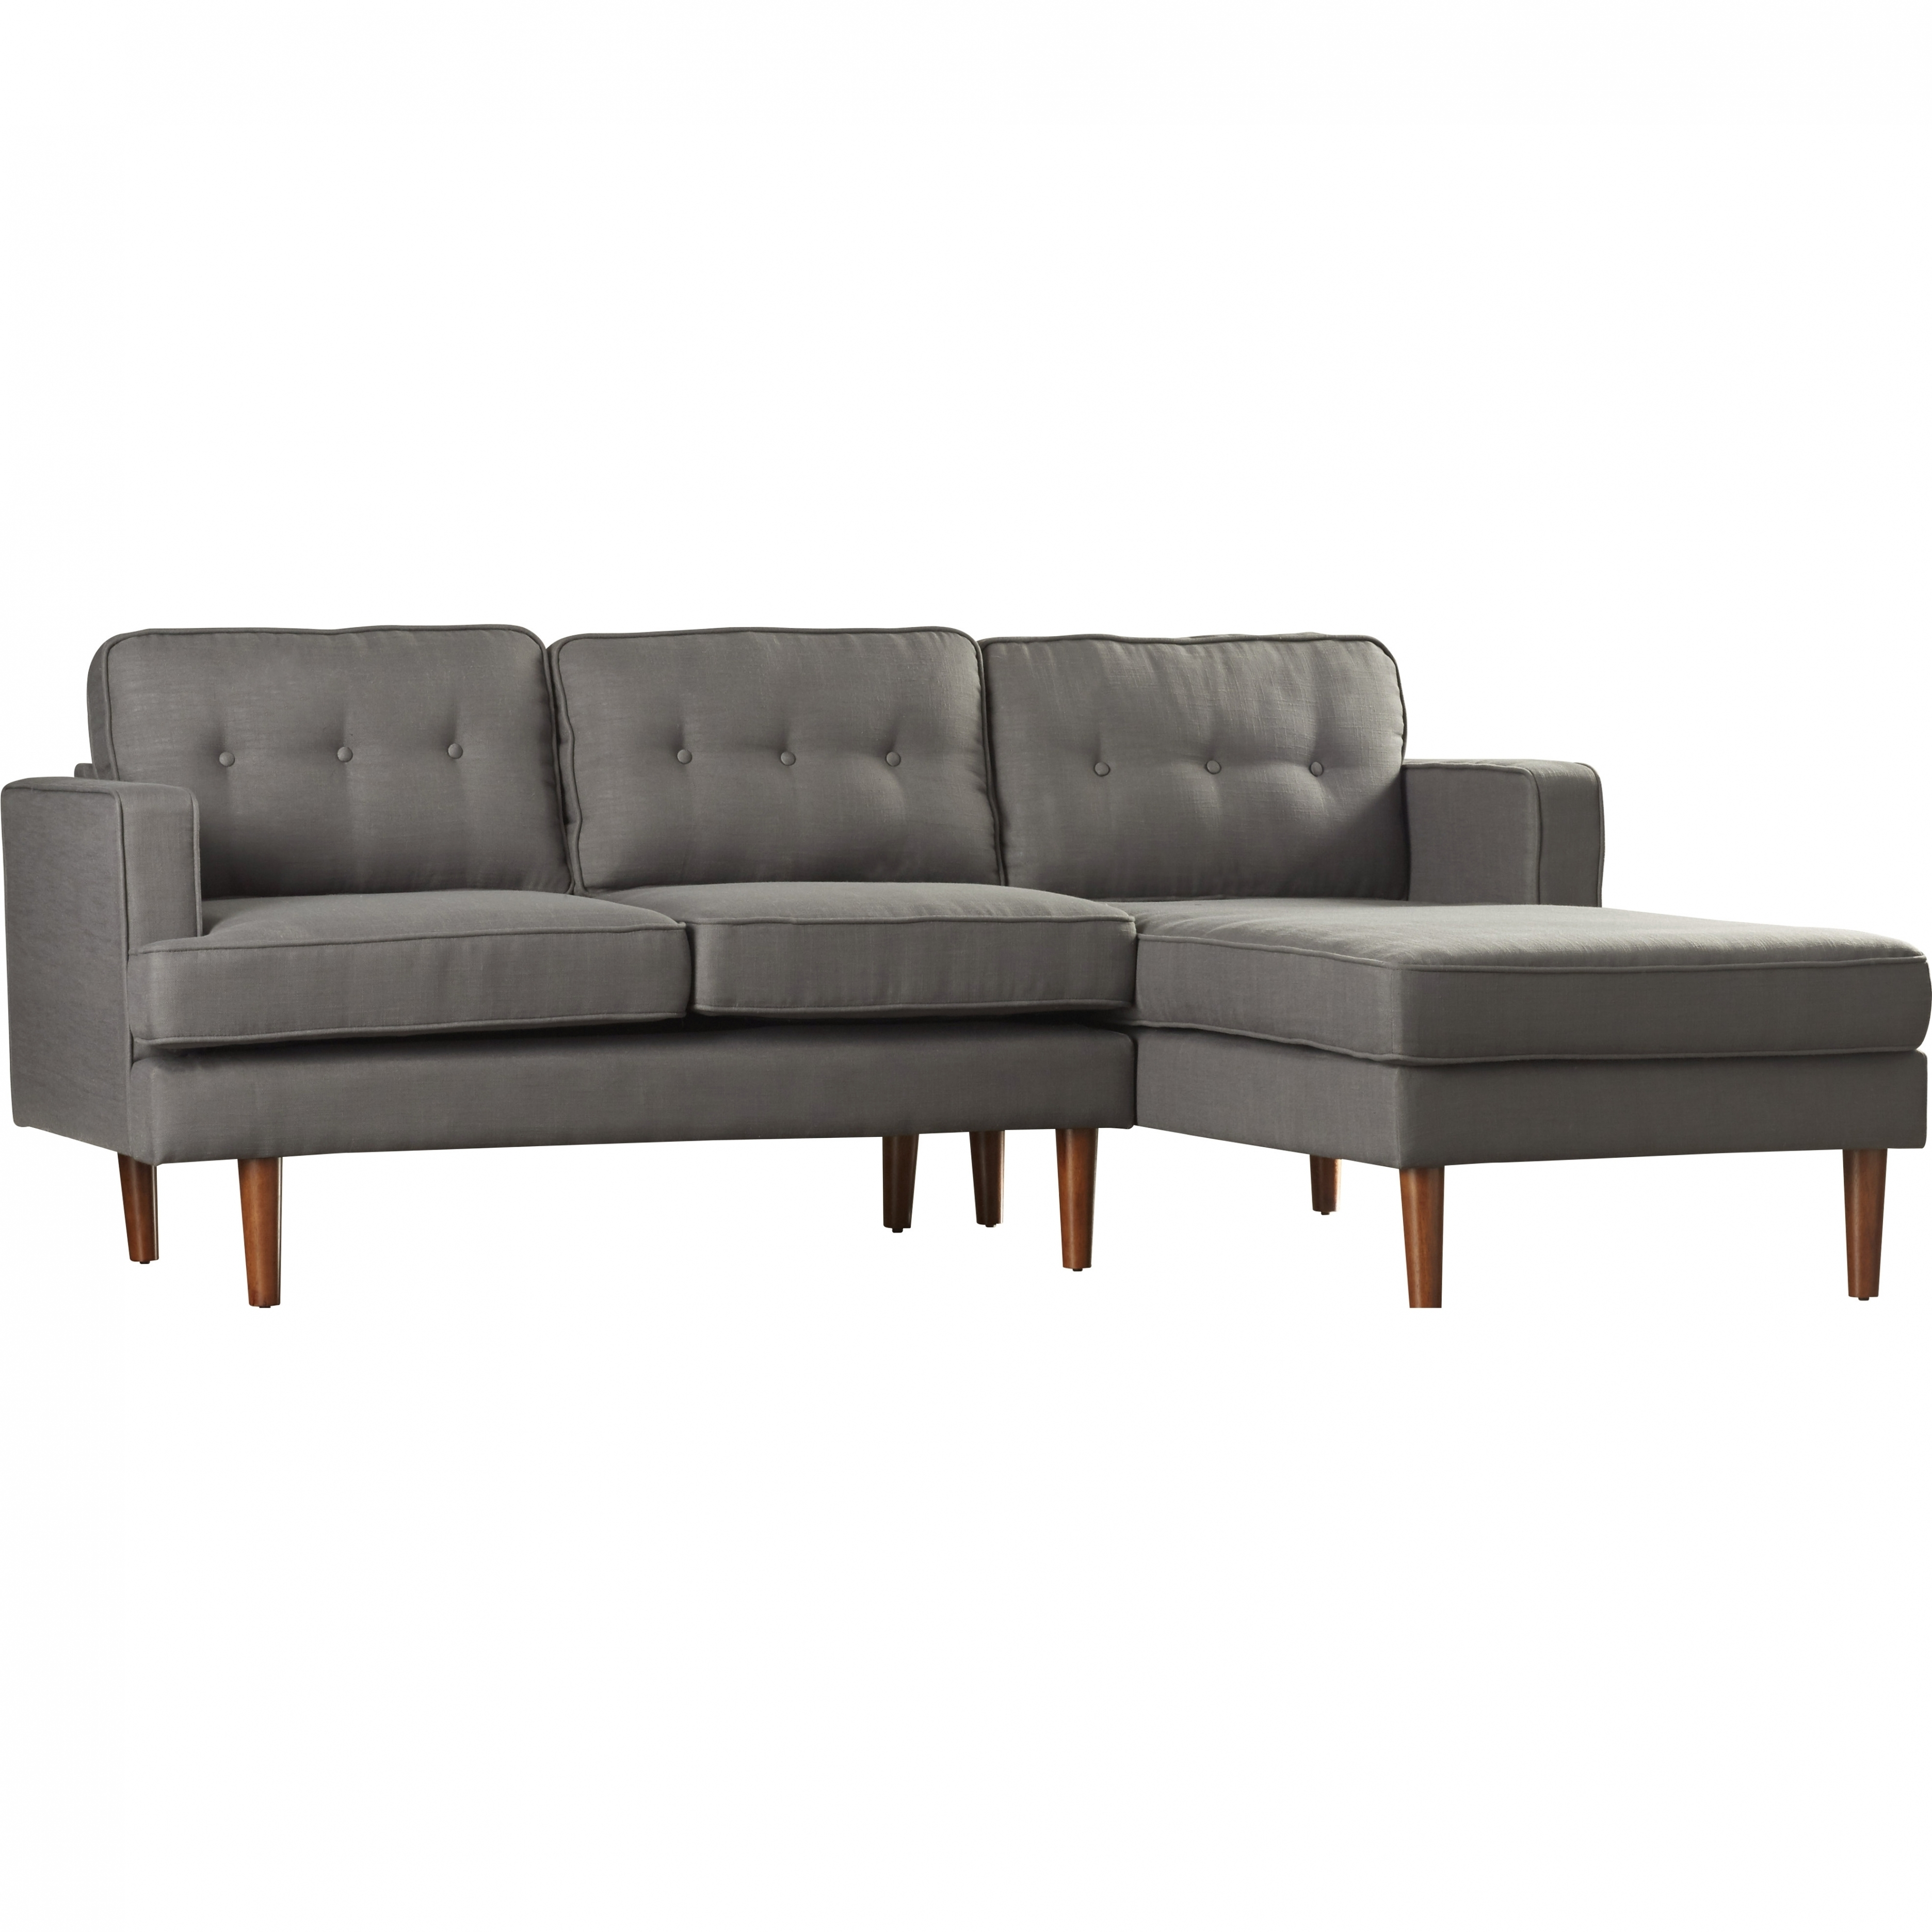 Costco Couches (View 5 of 20)